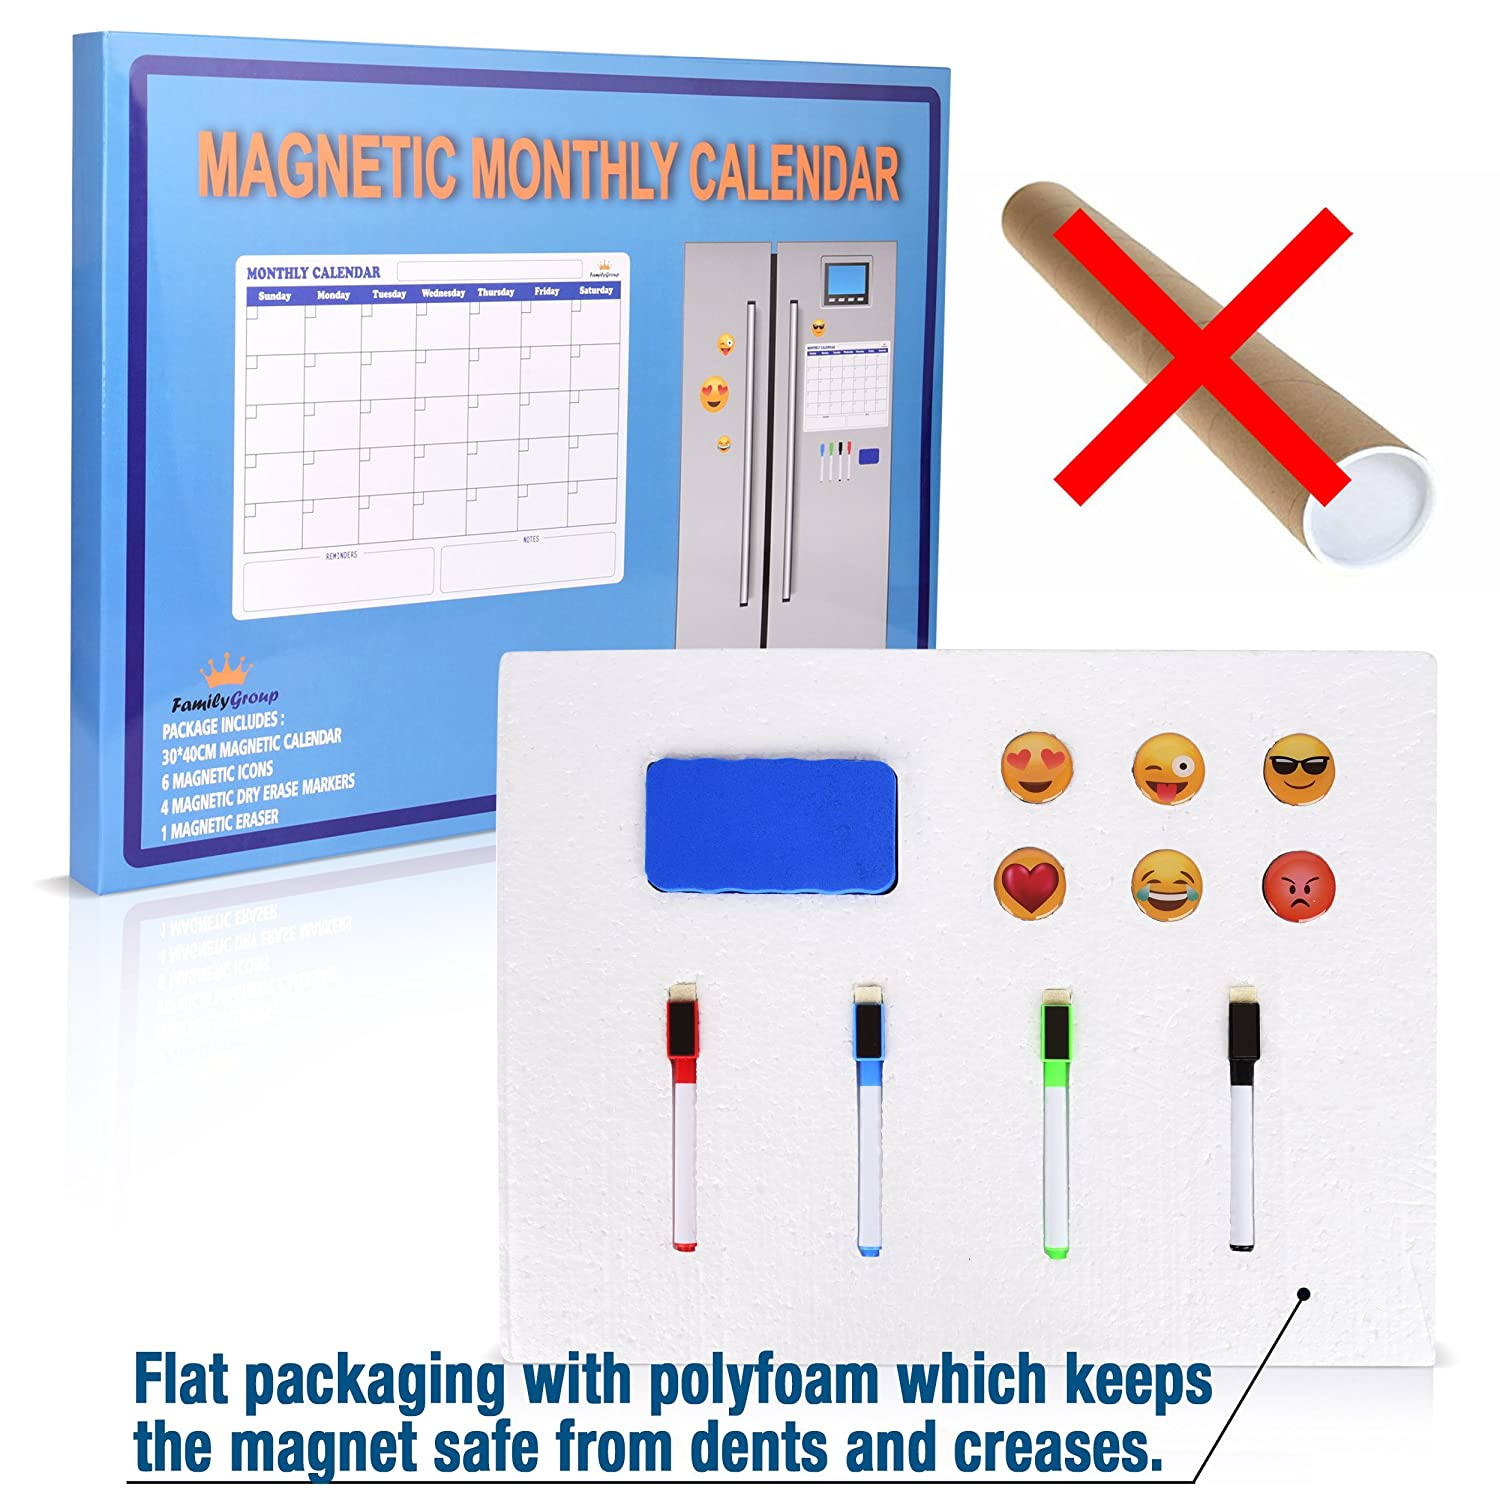 Magnetic Monthly Calendar For Refrigerator : Dry erase monthly calendar planner whiteboard for non magnetic